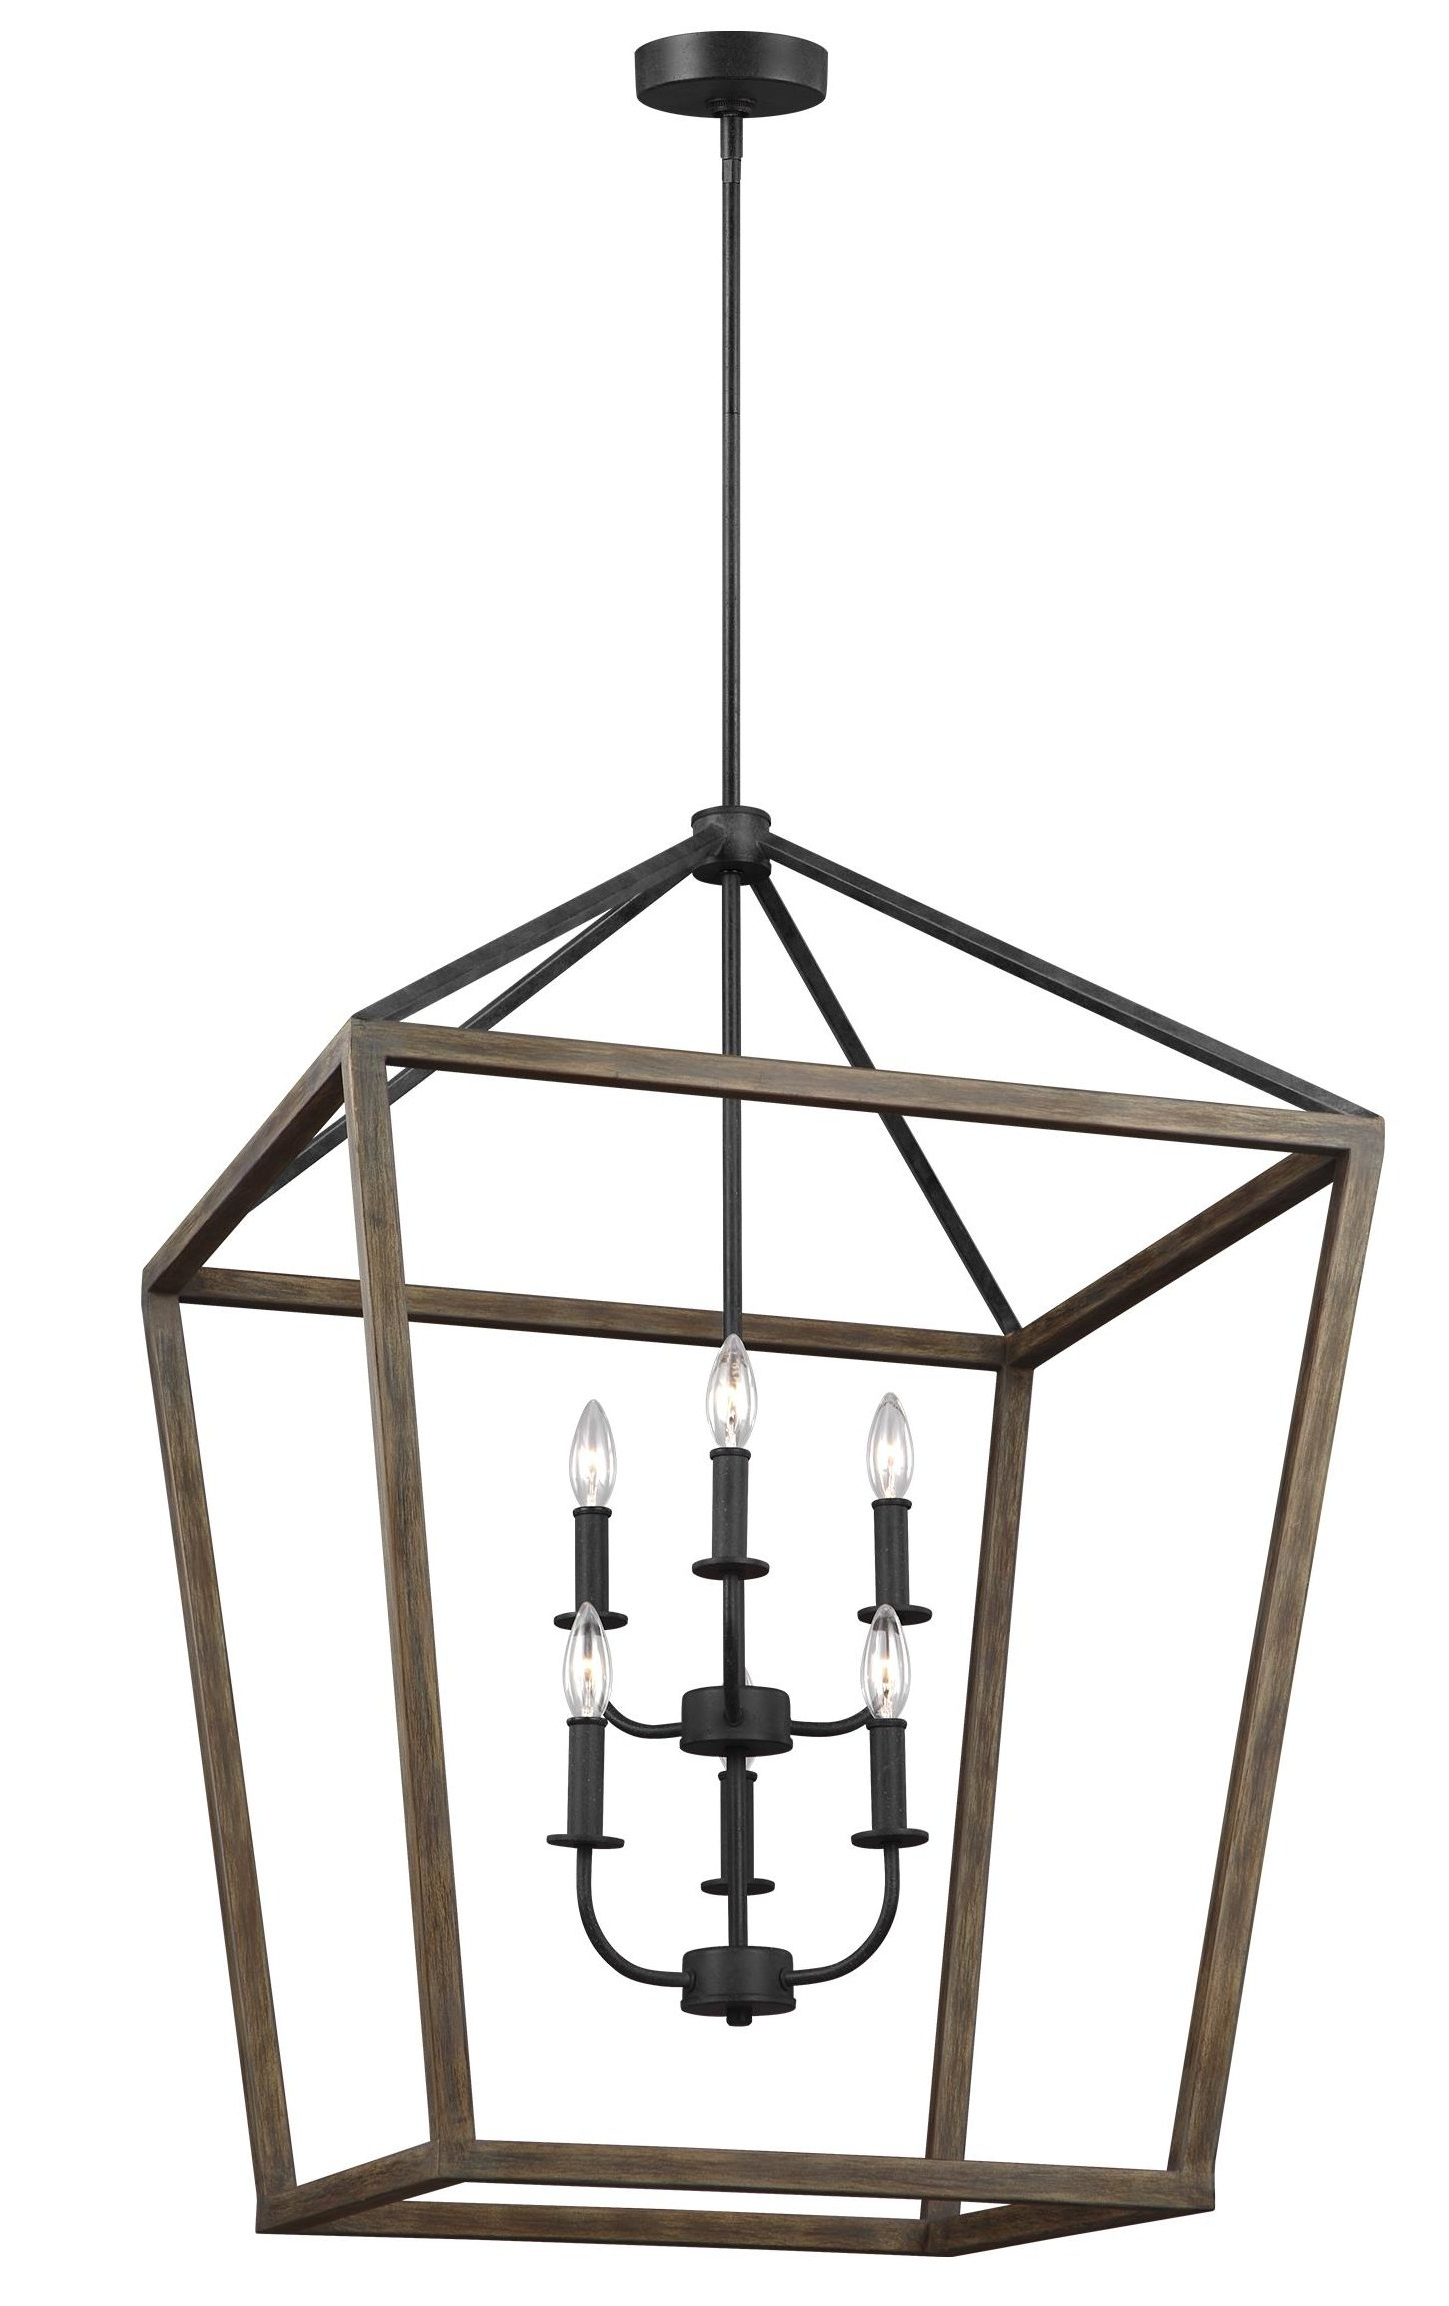 Odie 4 Light Lantern Square Pendants With Regard To Most Current Natarsha 6 Light Lantern Geometric Pendant (View 13 of 25)